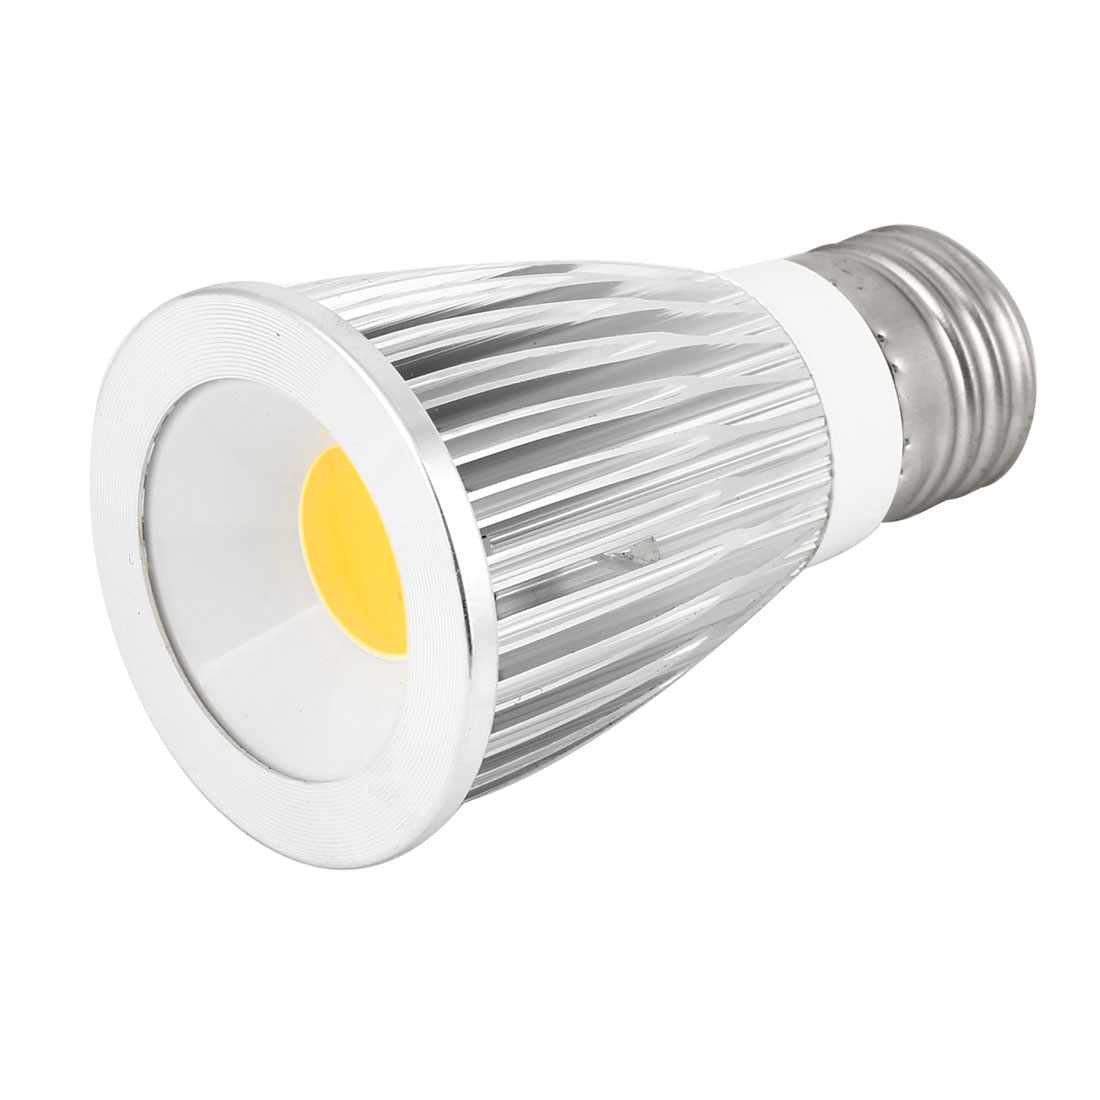 AC 85-265V 12W GU10 Dimmable Warm White Light COB LED Downlight Spotlight